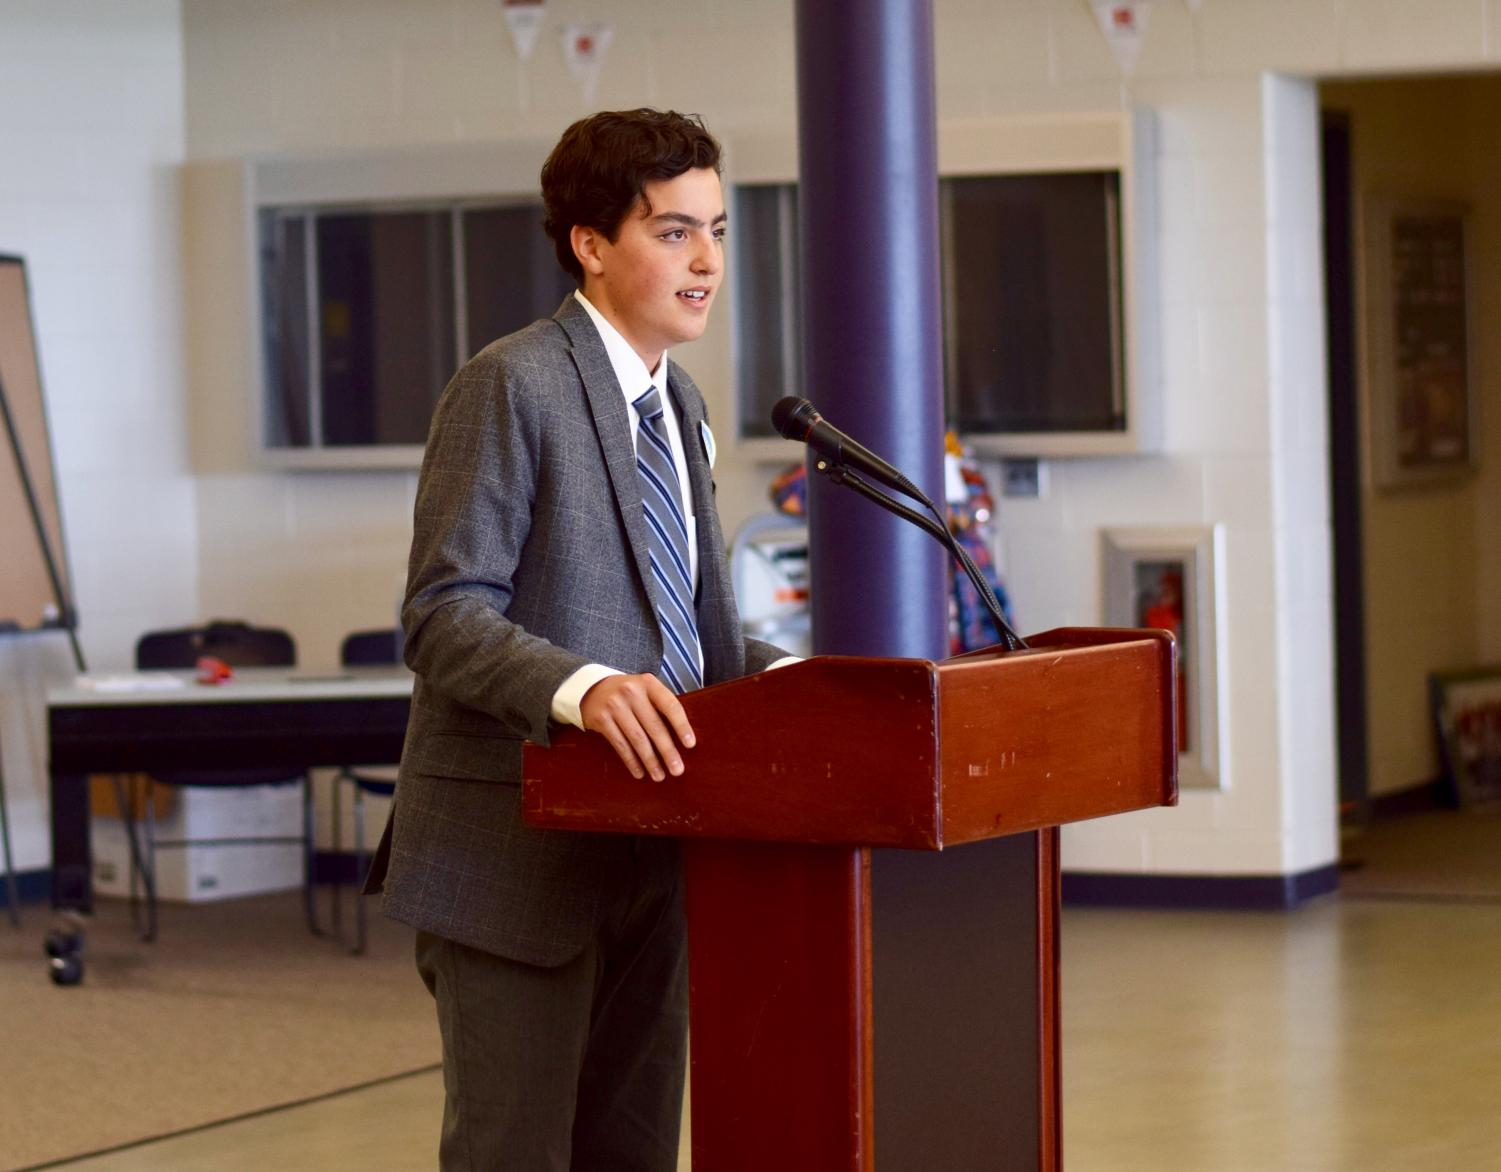 Junior Liam Marshall of Sea Girt will serve as SGA president for the 2018-19 school year.